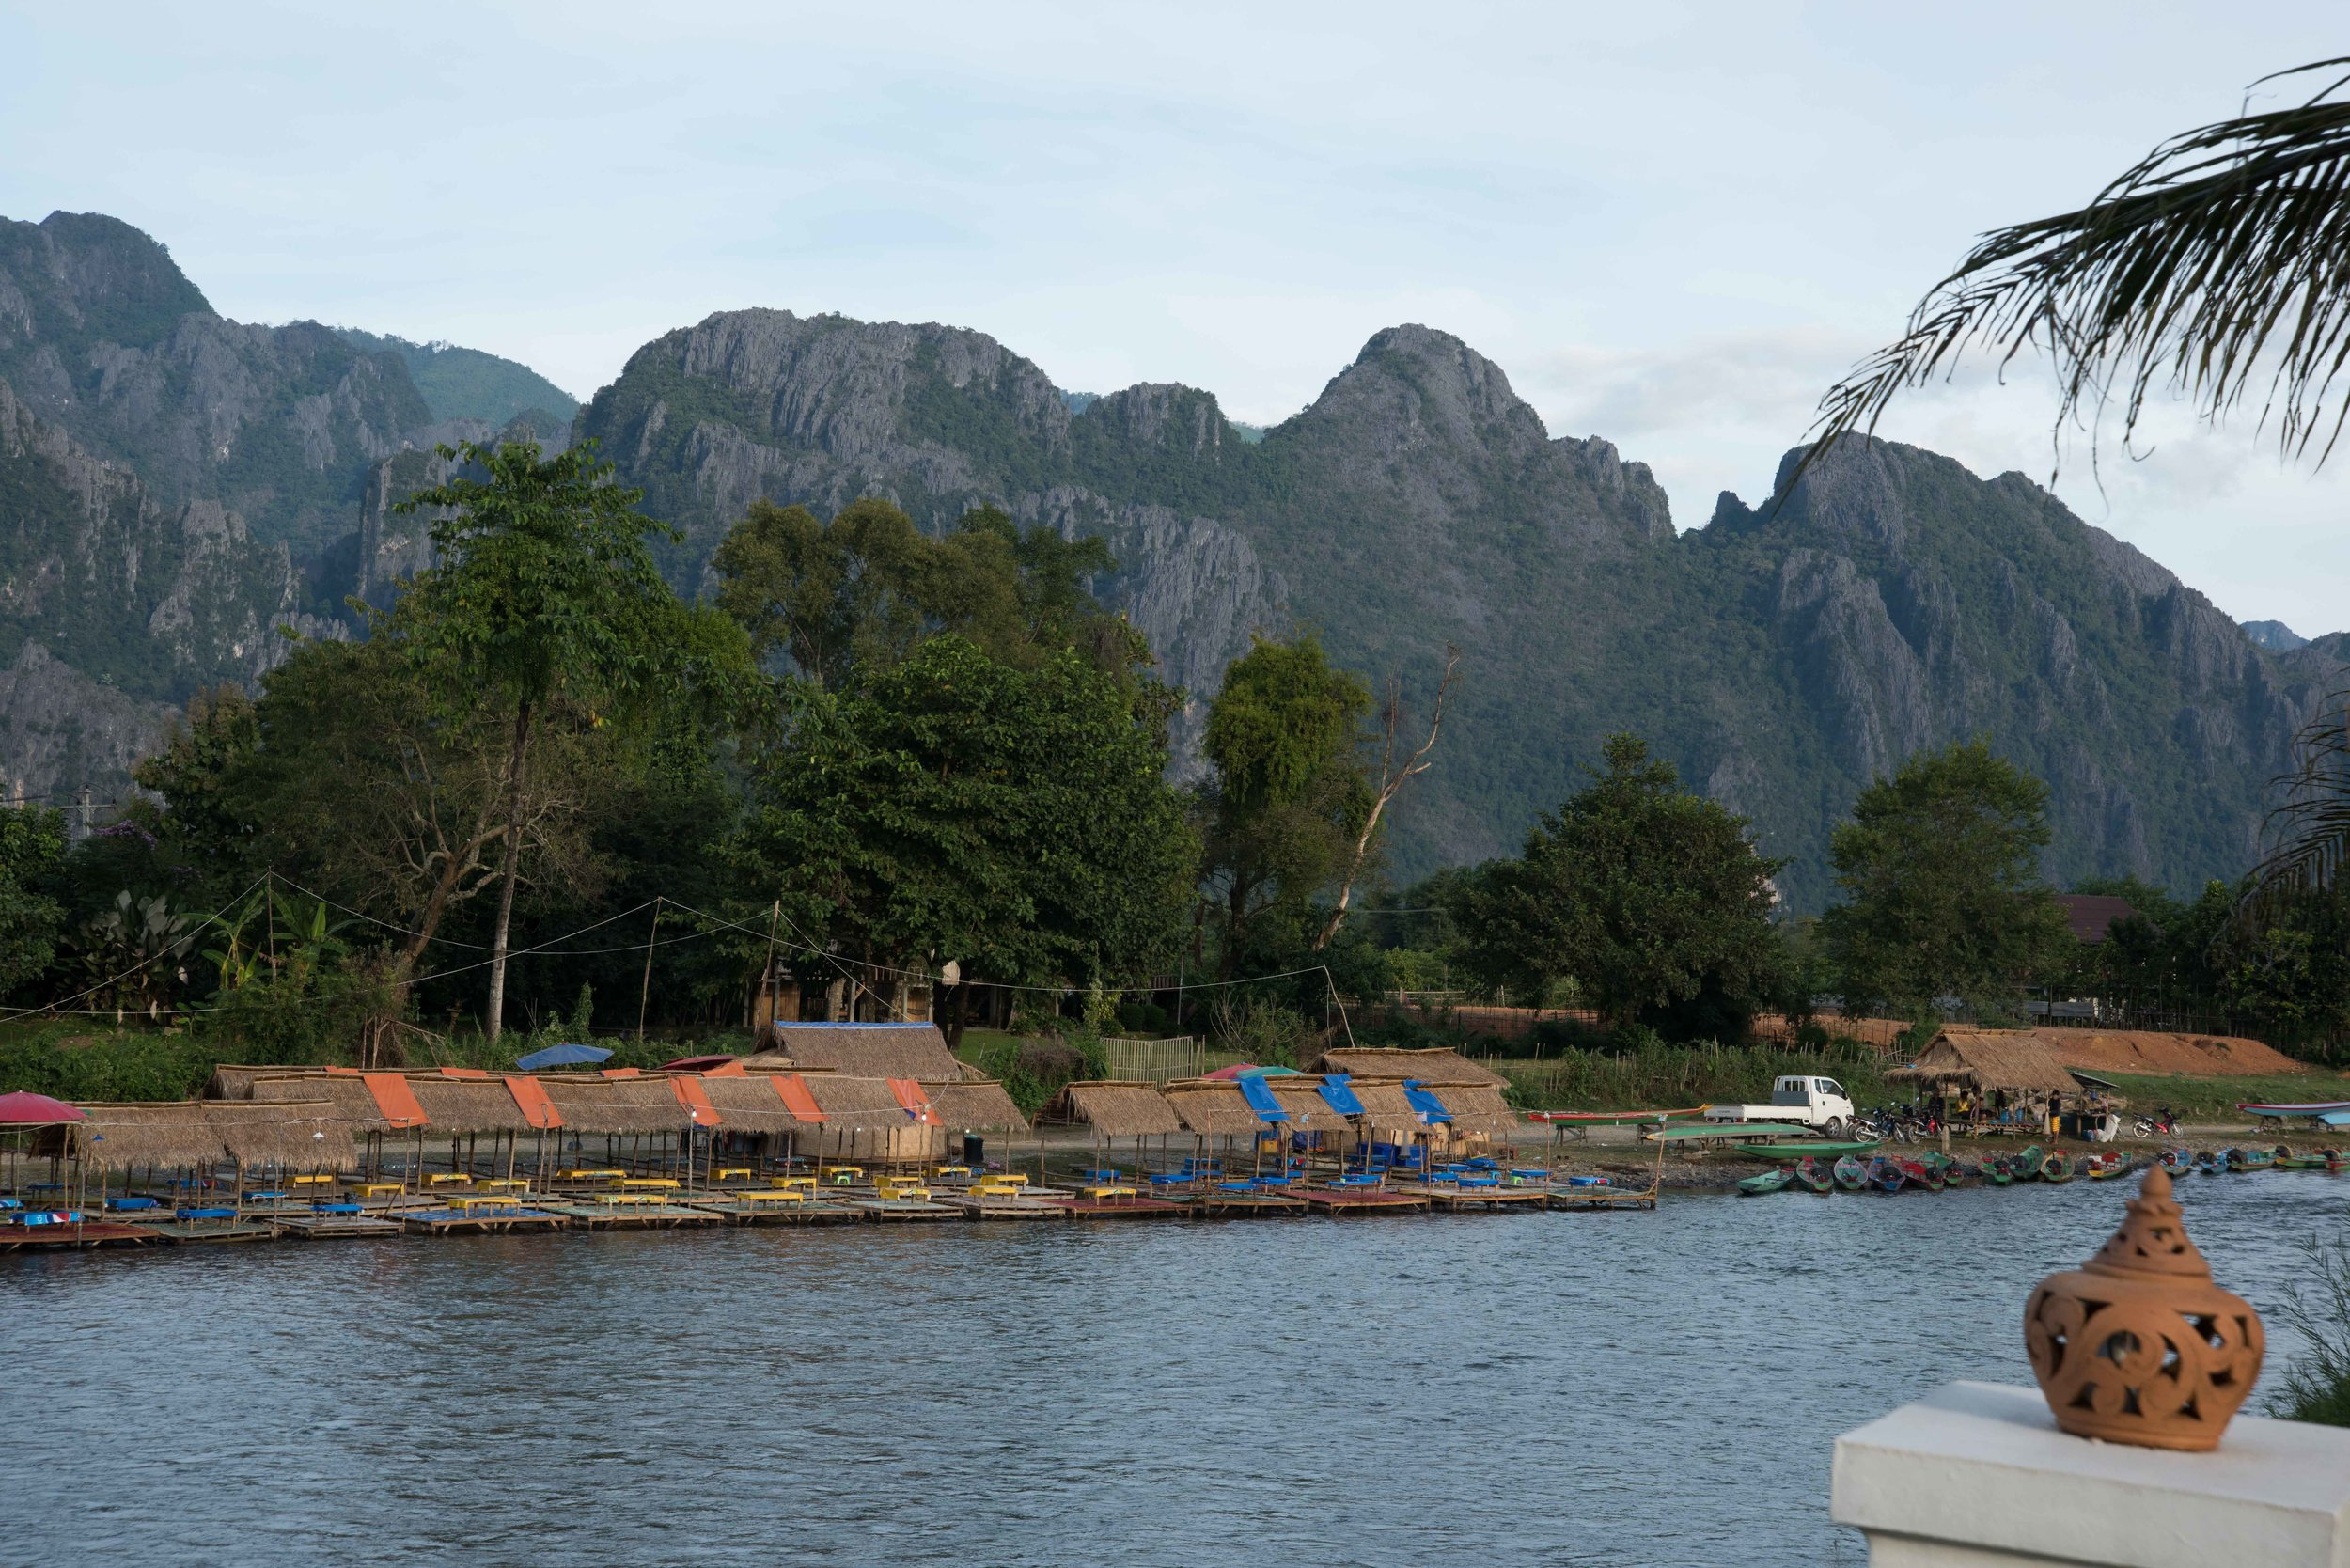 Karst Mountains from Riverside Boutique Resort, Vang Vieng, Laos, 29 Nov 2017-2.jpg